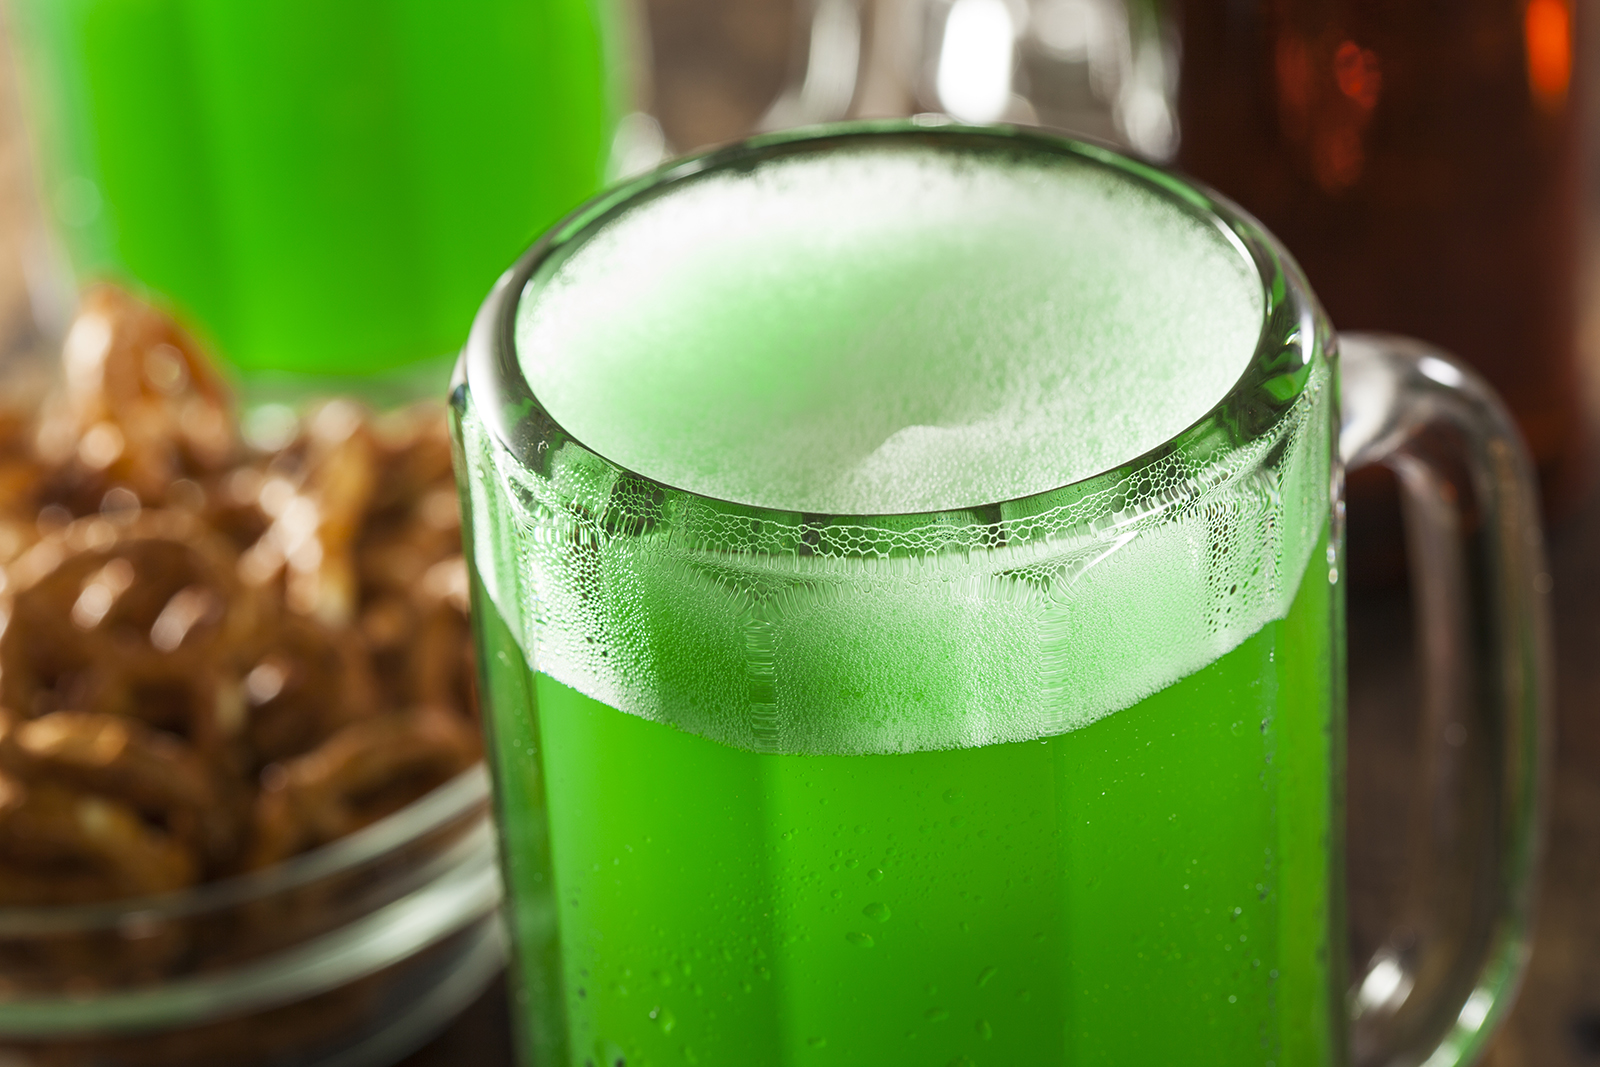 Drink some green beer to celebrate a special day.